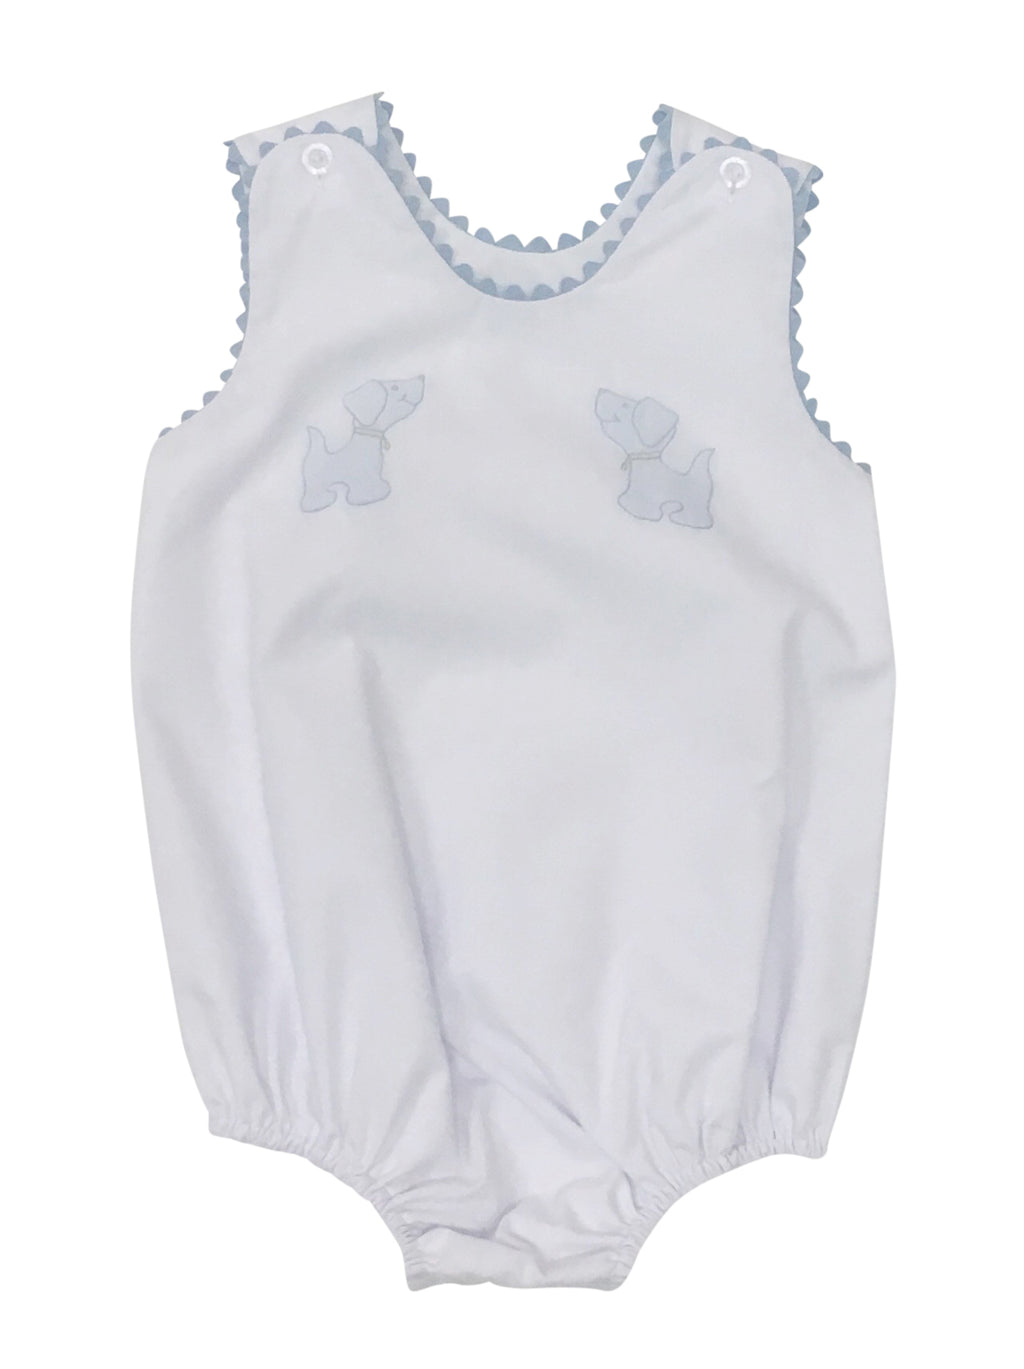 Auraluz White Sunbubble with Blue Dogs - Born Childrens Boutique